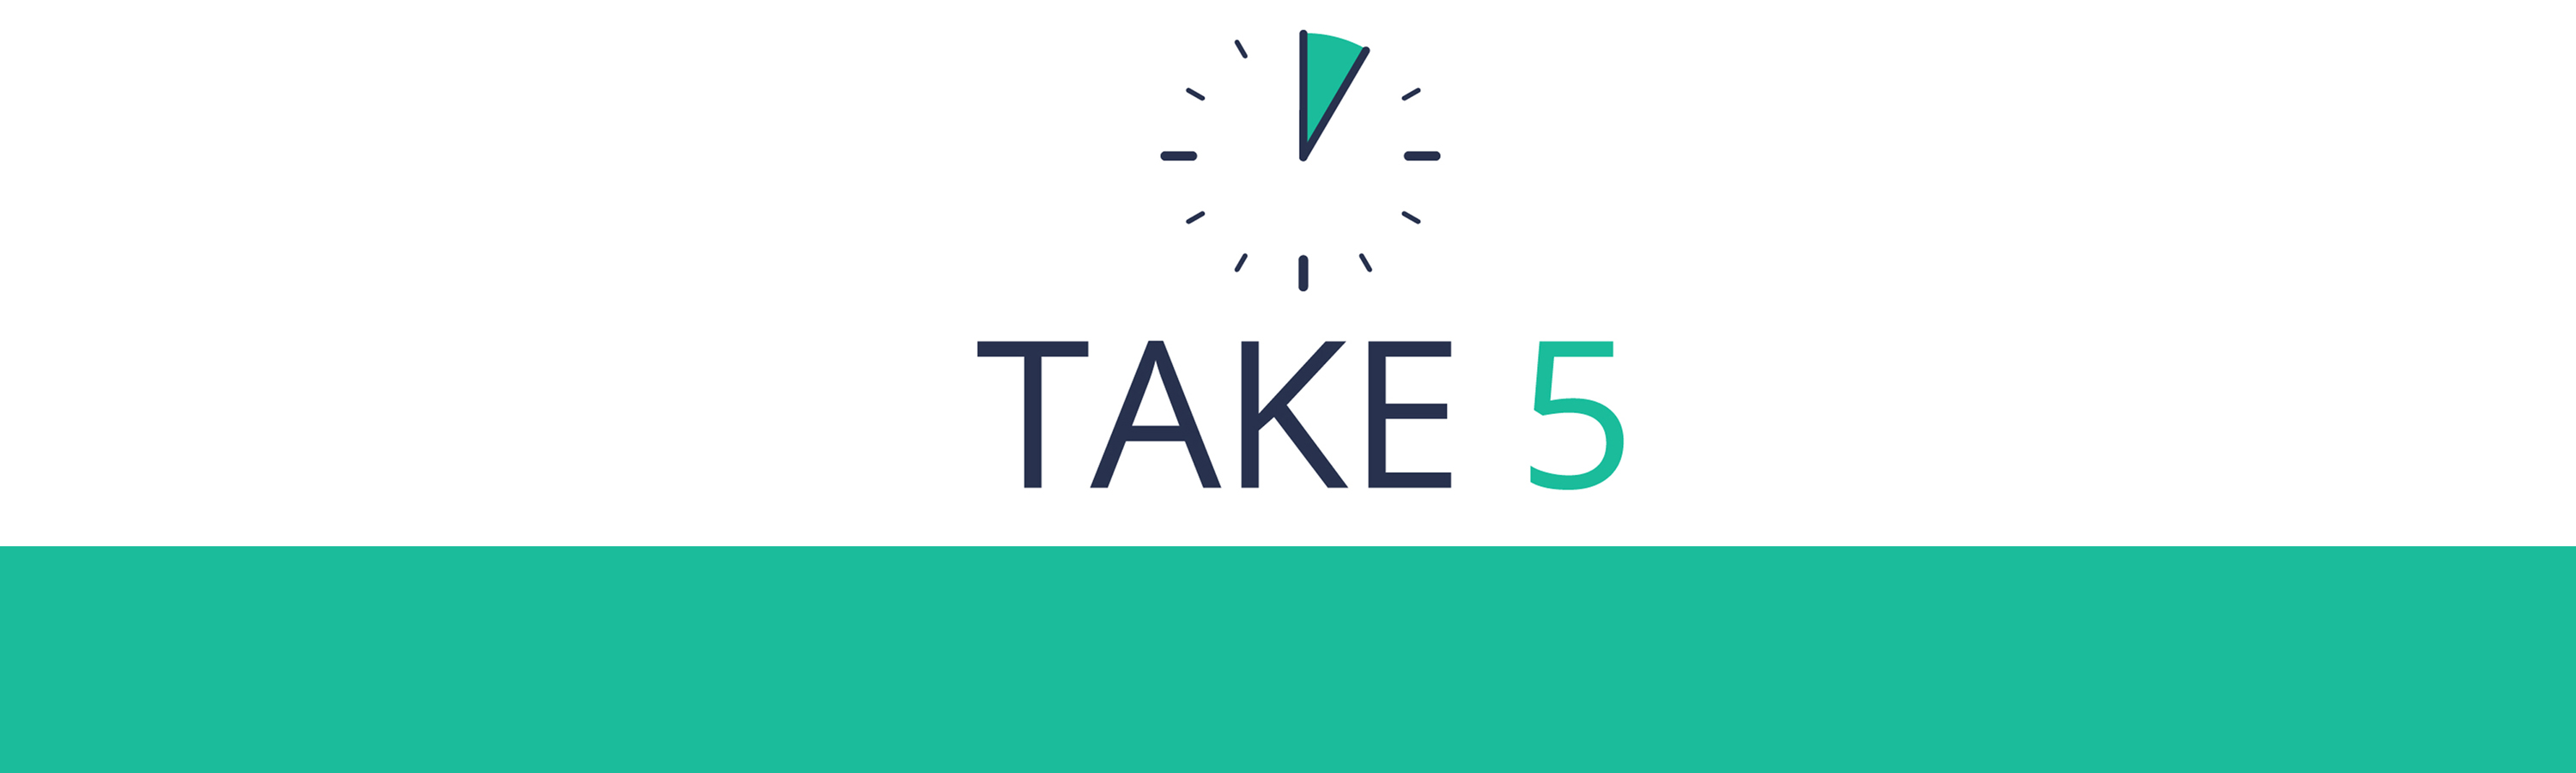 Take 5 logo and banner